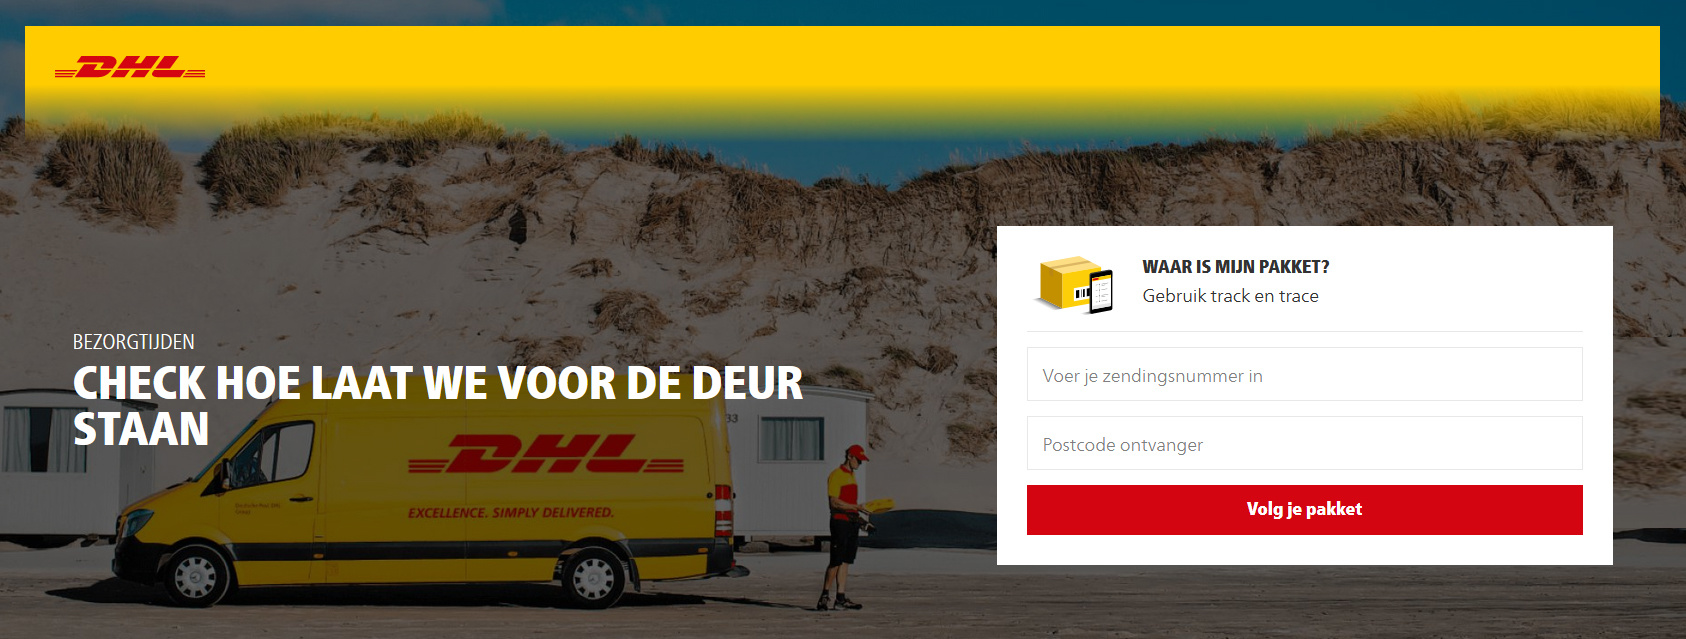 Track and trace Package with DHL and Hockeypoint